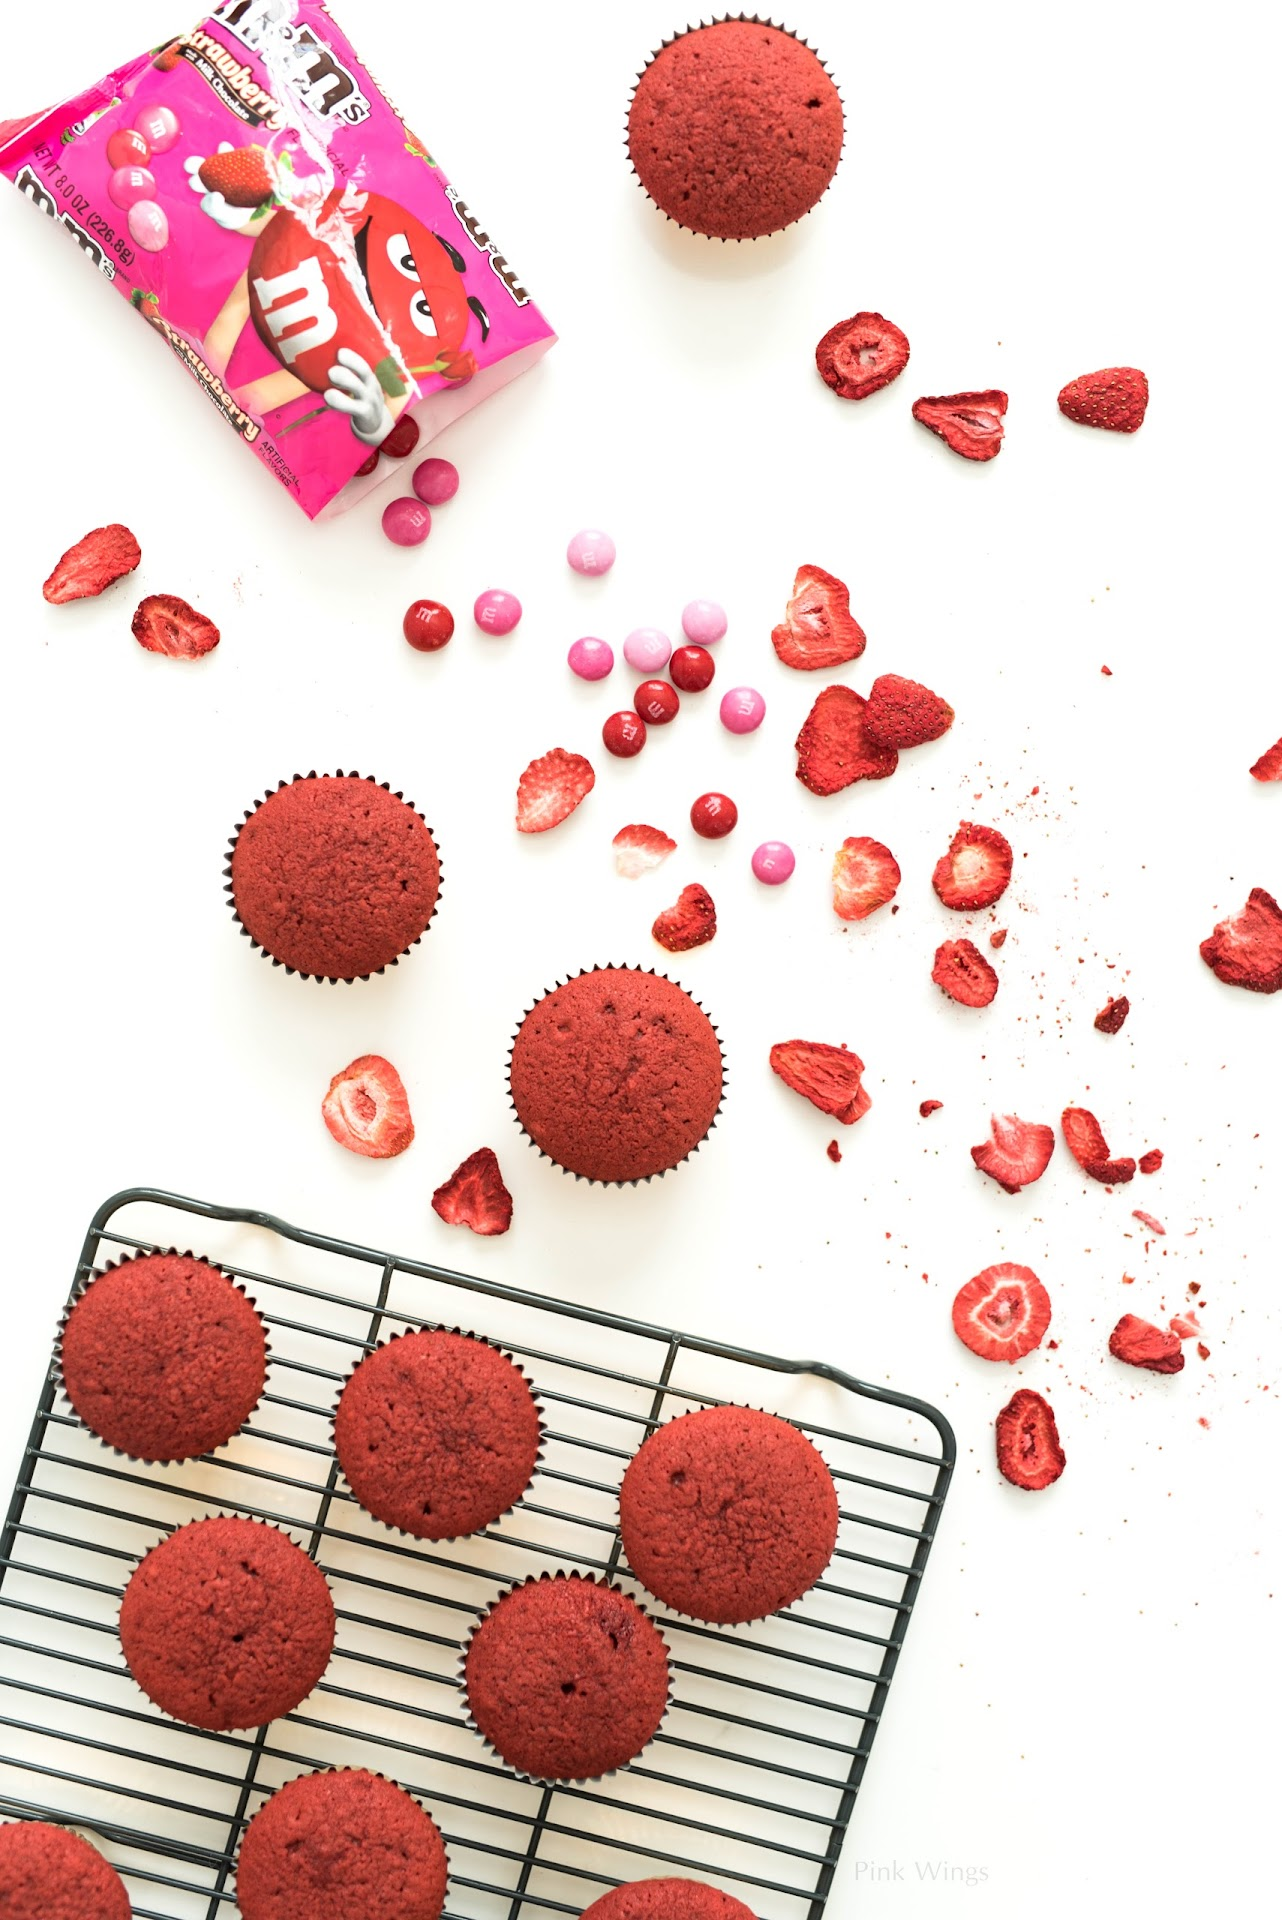 strawberry buttercream filling, Valentine's Day food ideas, desserts, gifts for anyone, Valentine's Day party ideas, pink dessert, pink food, red food, M&M's® Strawberry, easy bake red velvet cupcakes, fresh strawberry frosting, strawberry cream cheese frosting